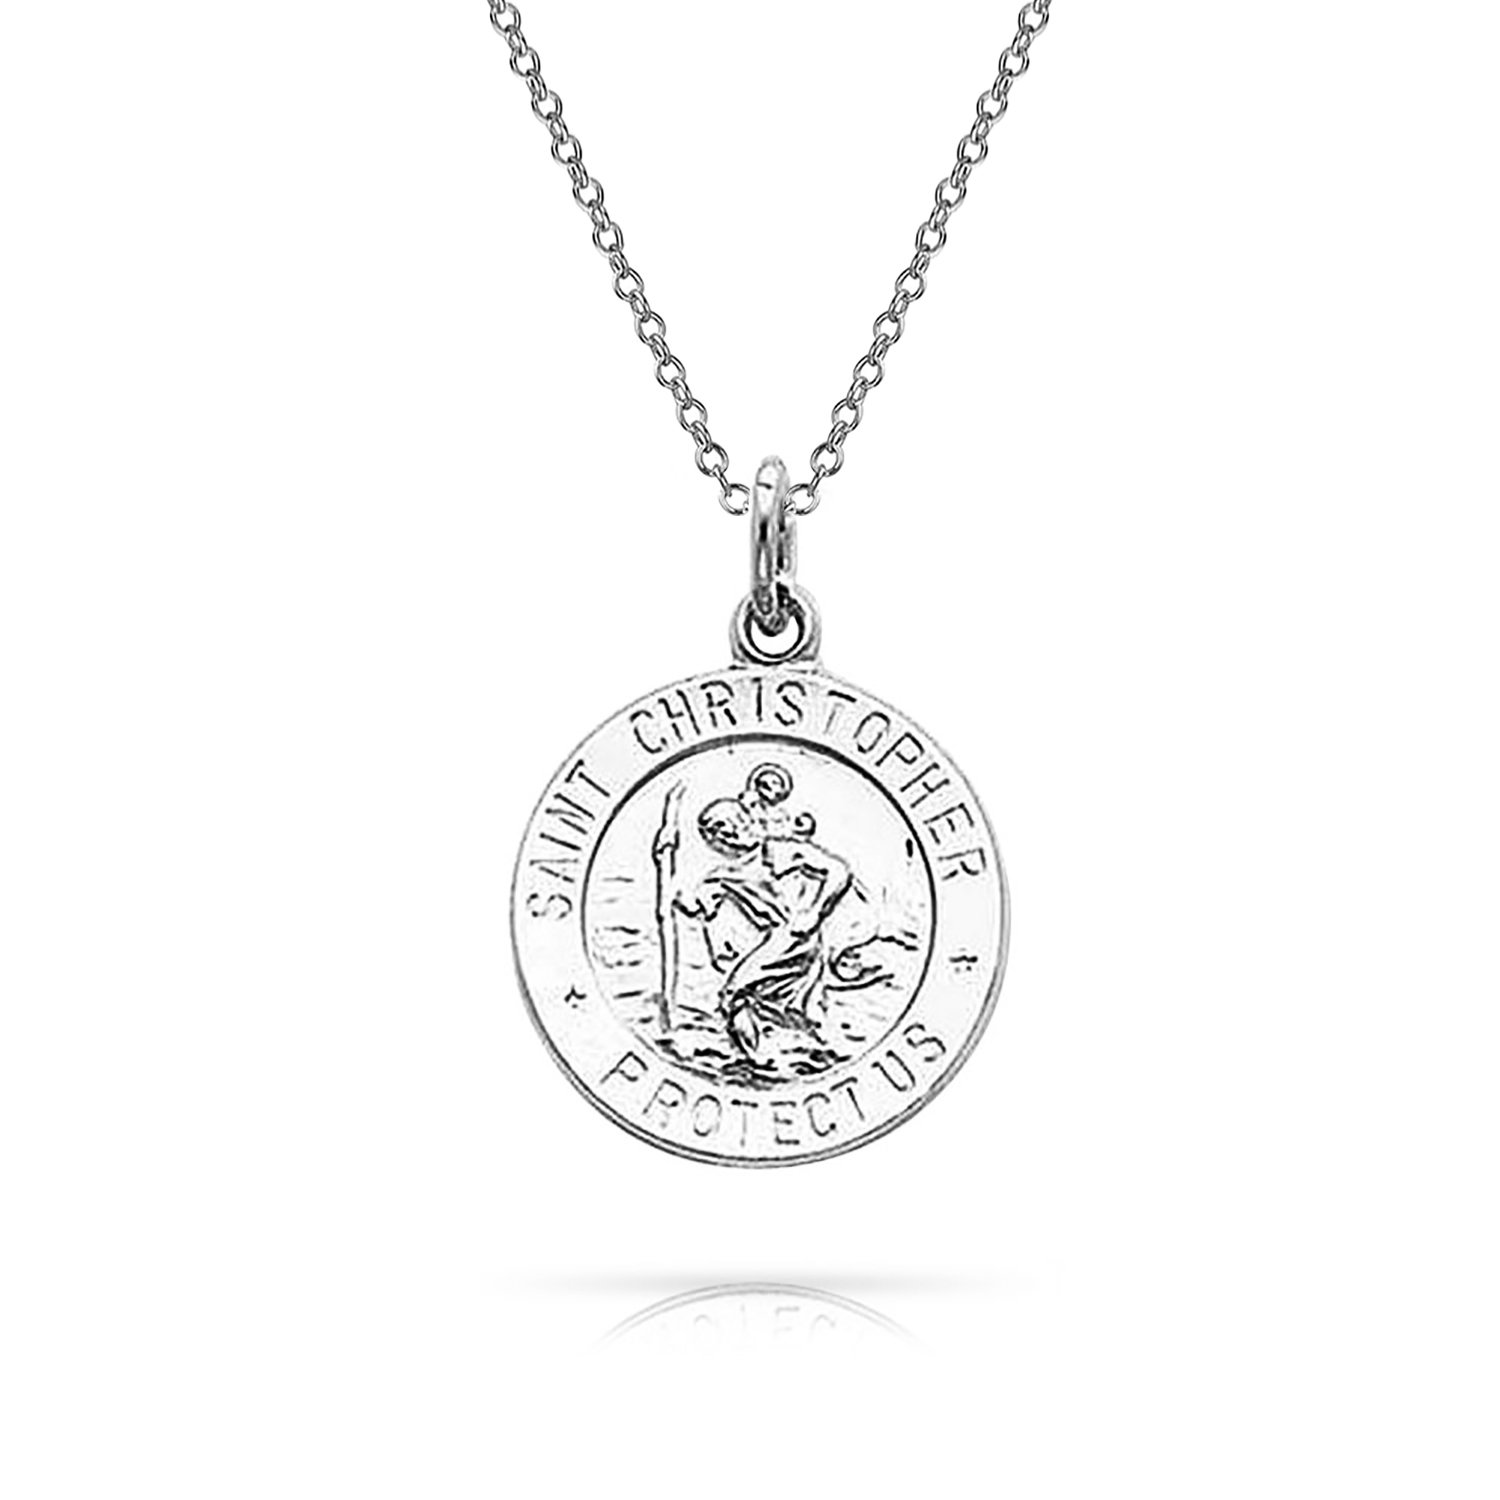 St Christopher Protect Us Medallion Religious Pendant Sterling Silver Necklace 18 Inches Bling Jewelry BS-SC18